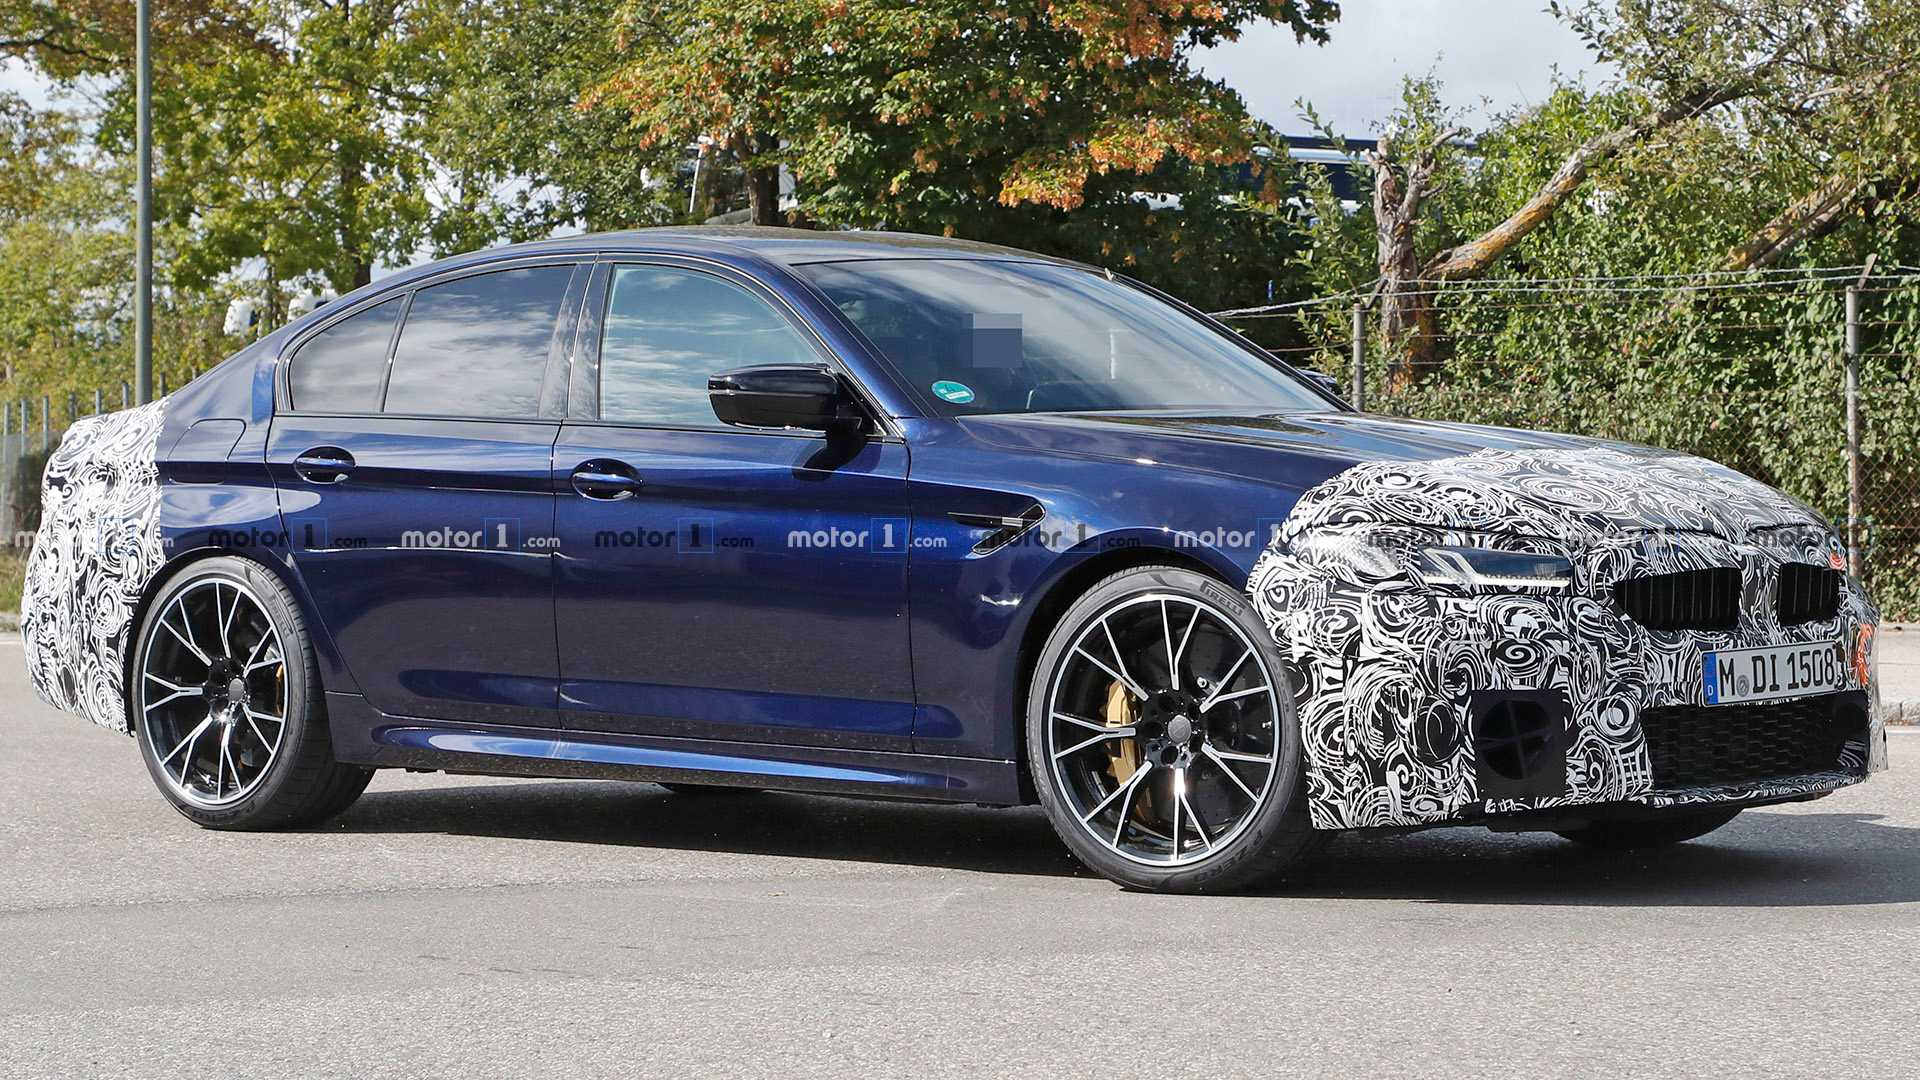 Refreshed BMW M5 Spied Looking Cool In Blue